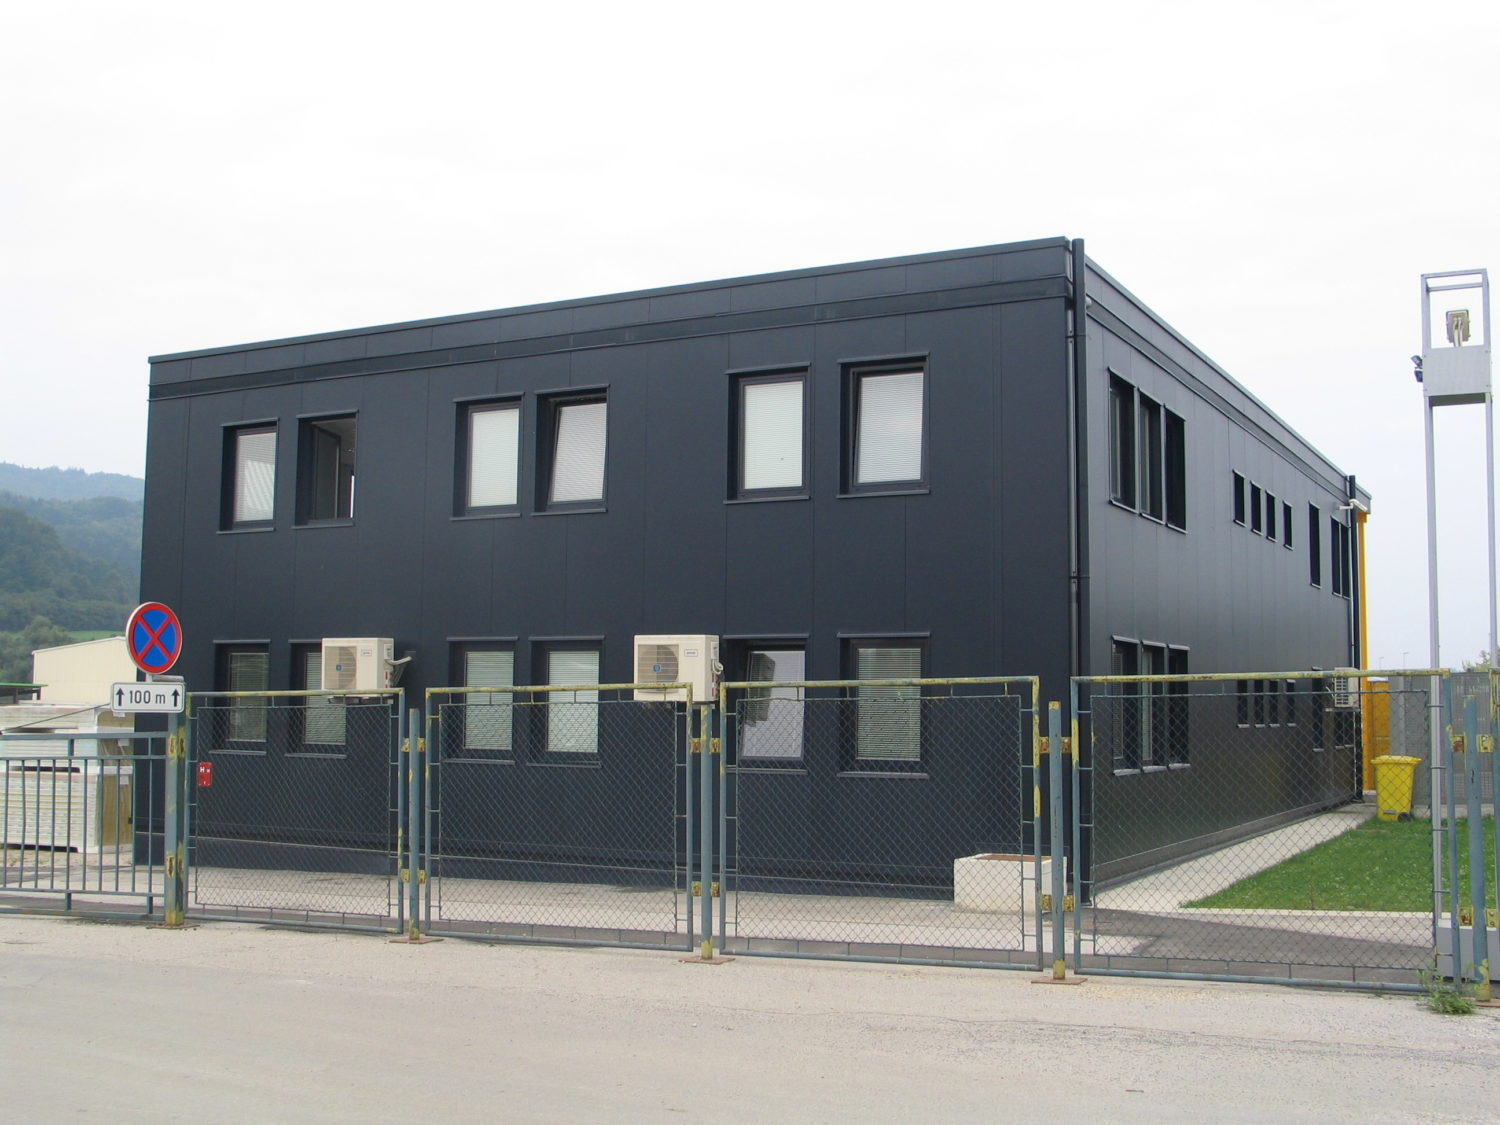 prefabricated office space low cost why invest in prefabricated office buildings modular buildings temporary offices uk cotaplan